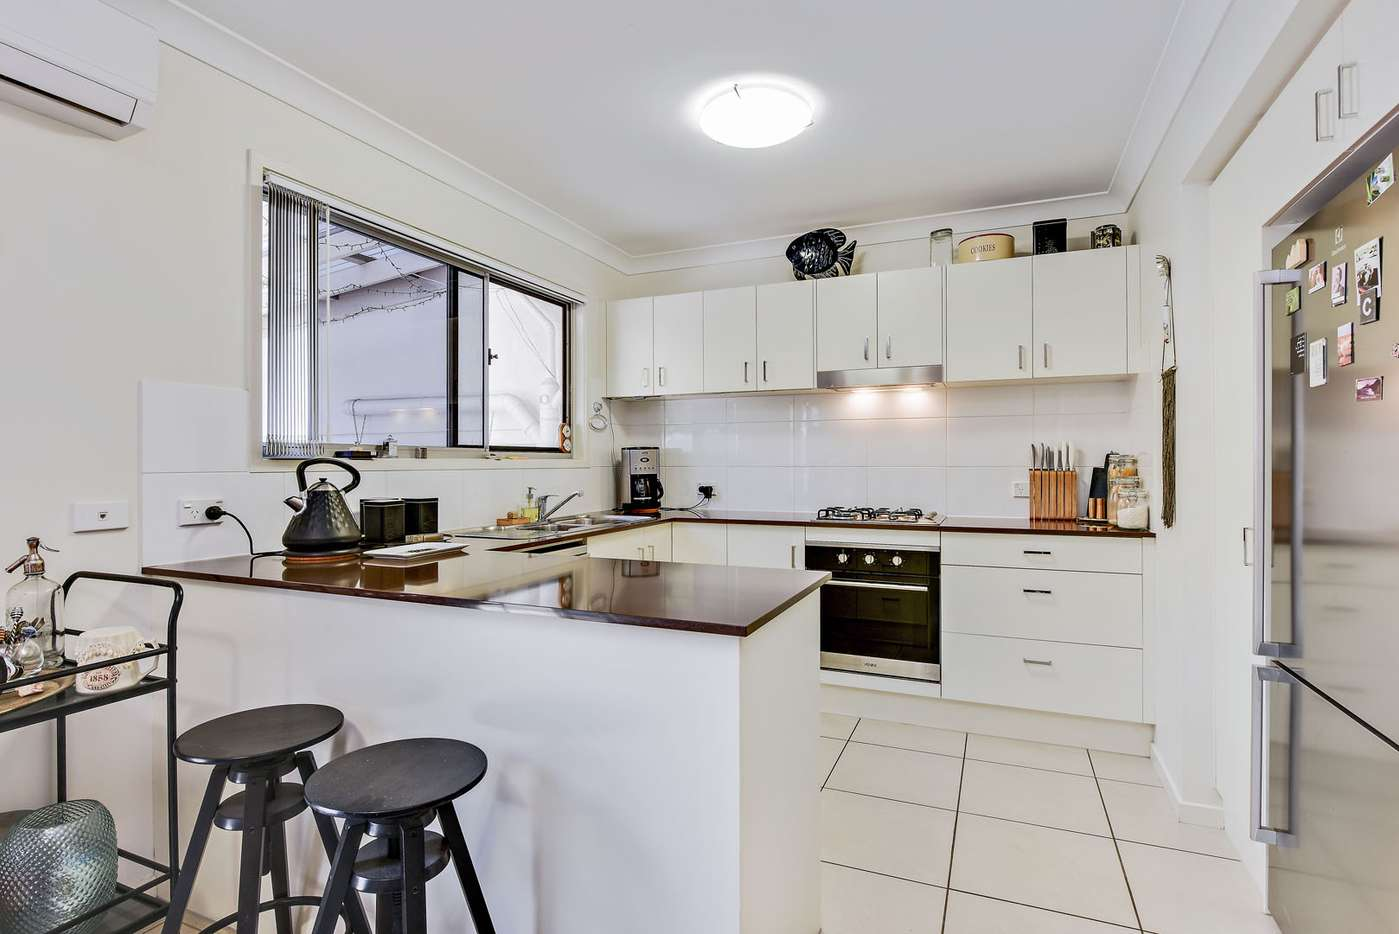 Main view of Homely townhouse listing, Address available on request, Mango Hill, QLD 4509